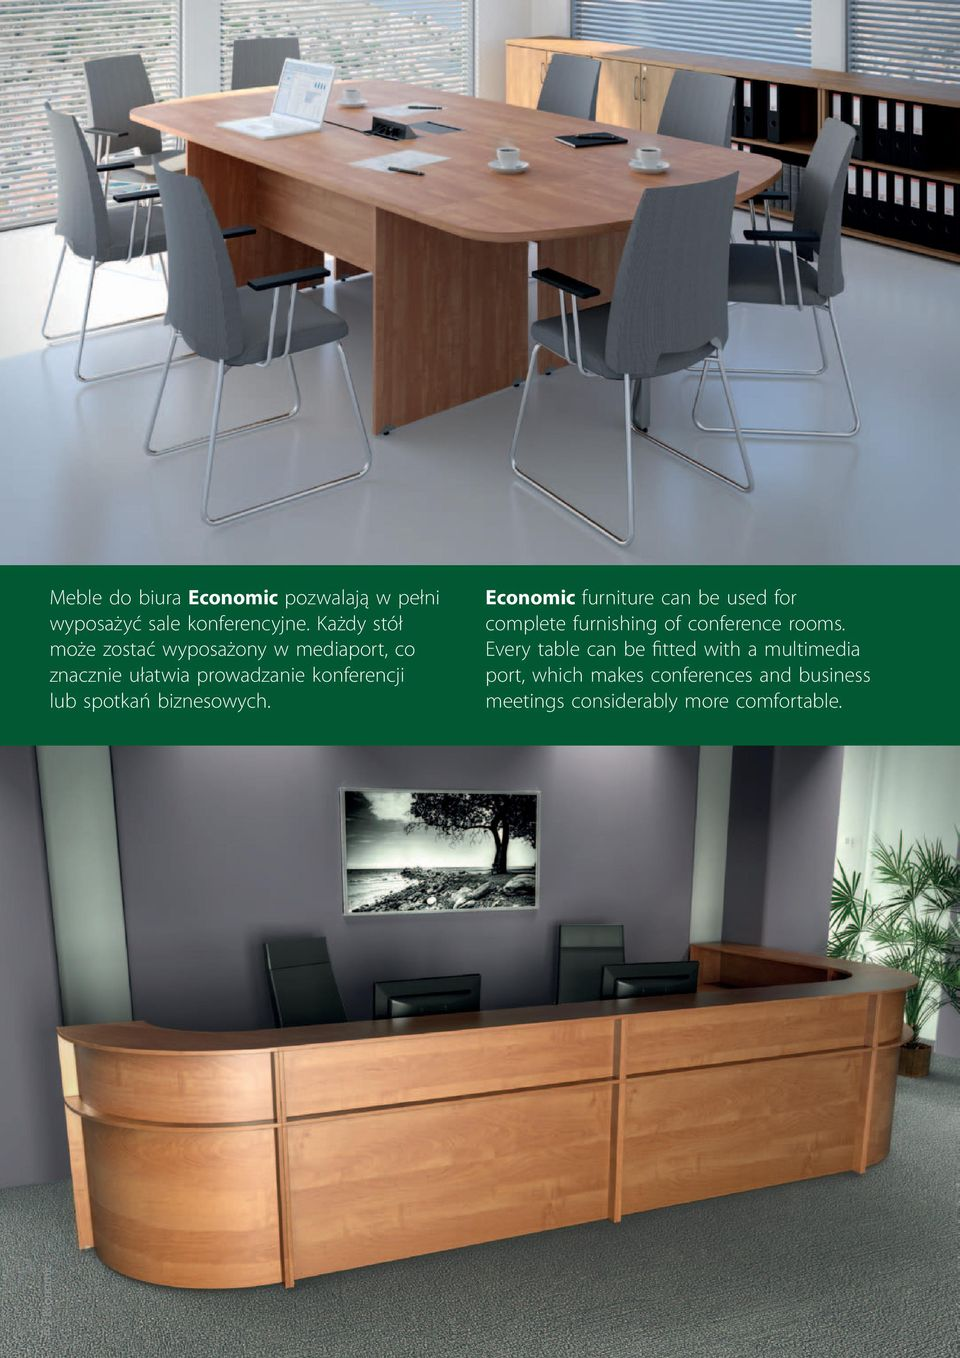 spotkań biznesowych. Economic furniture can be used for complete furnishing of conference rooms.